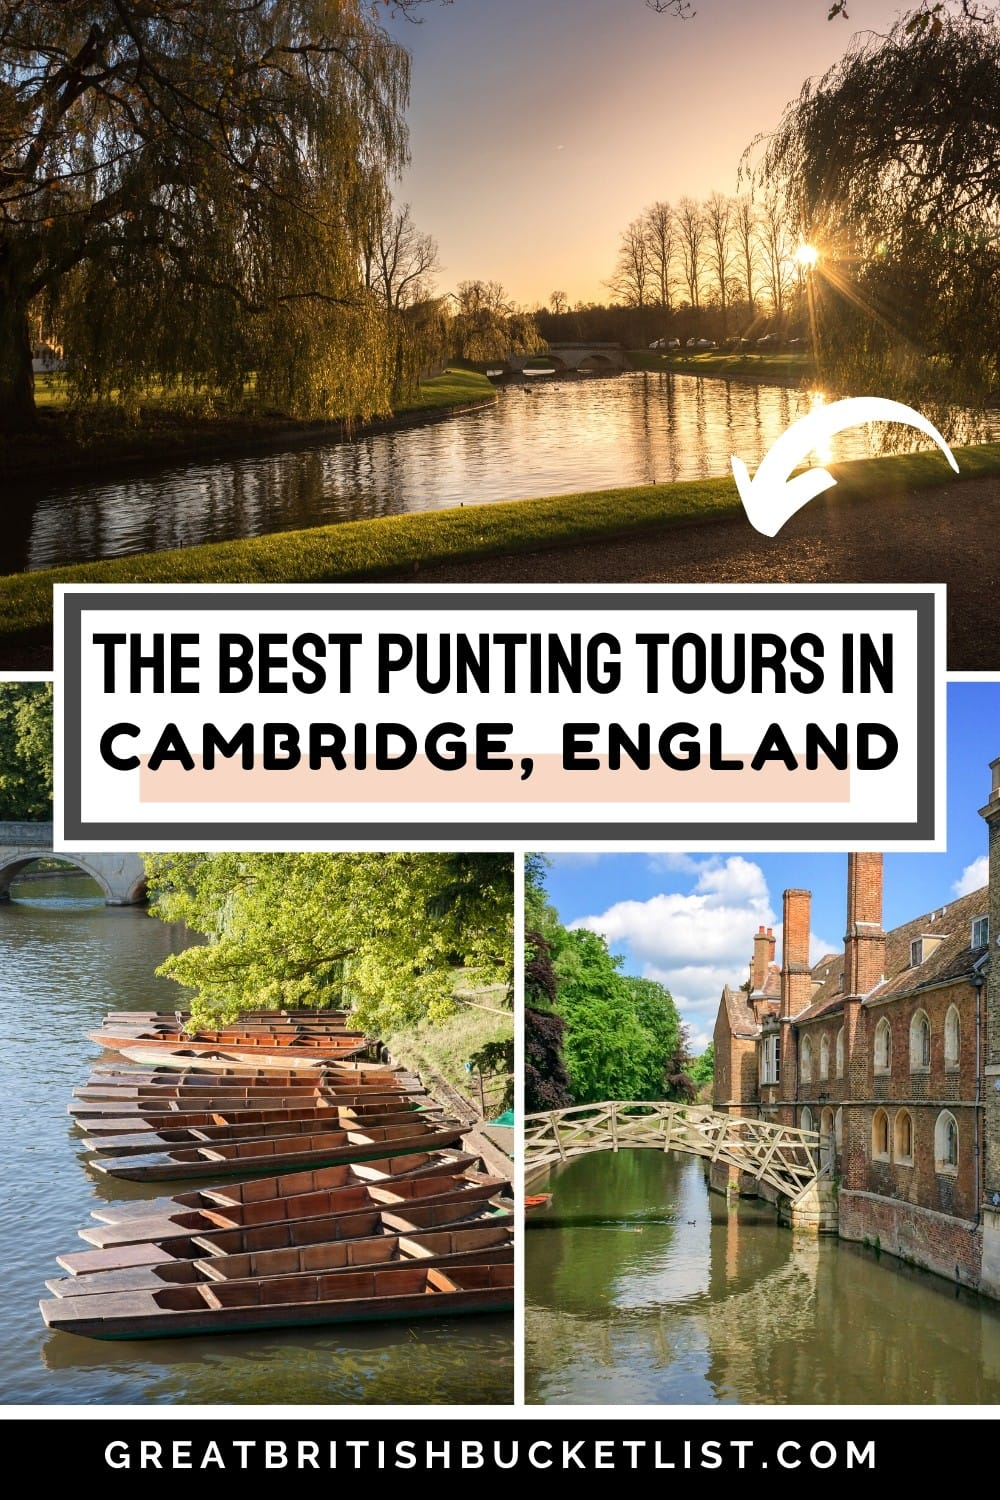 The Best Punting Tours in Cambridge, England